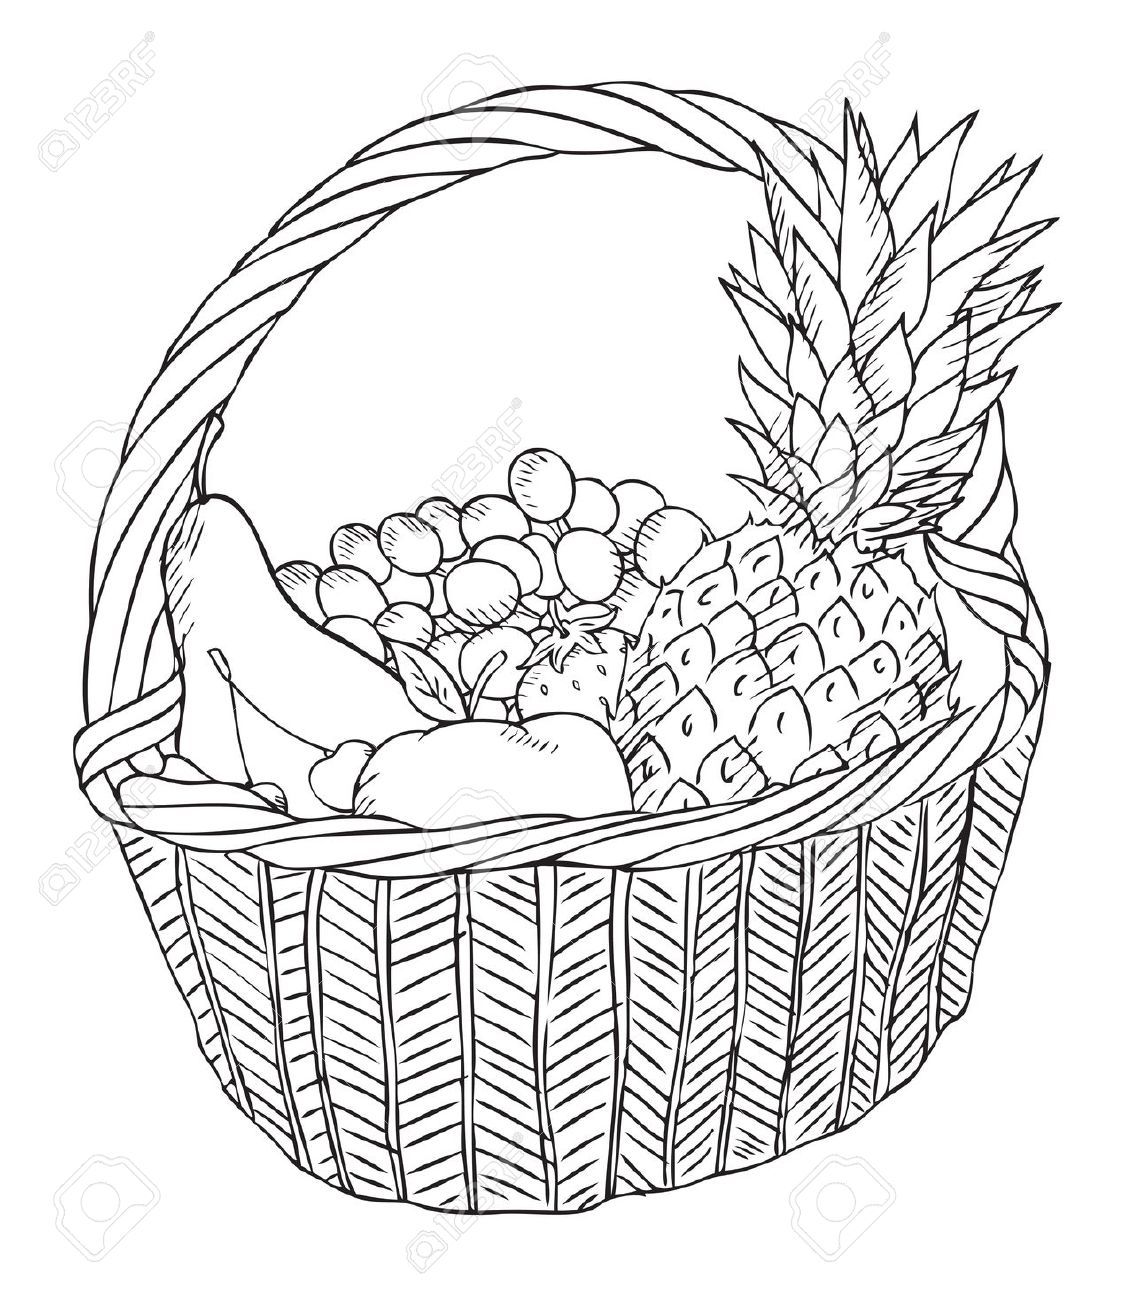 1133x1300 Basket Of Fruits Clipart Black And White